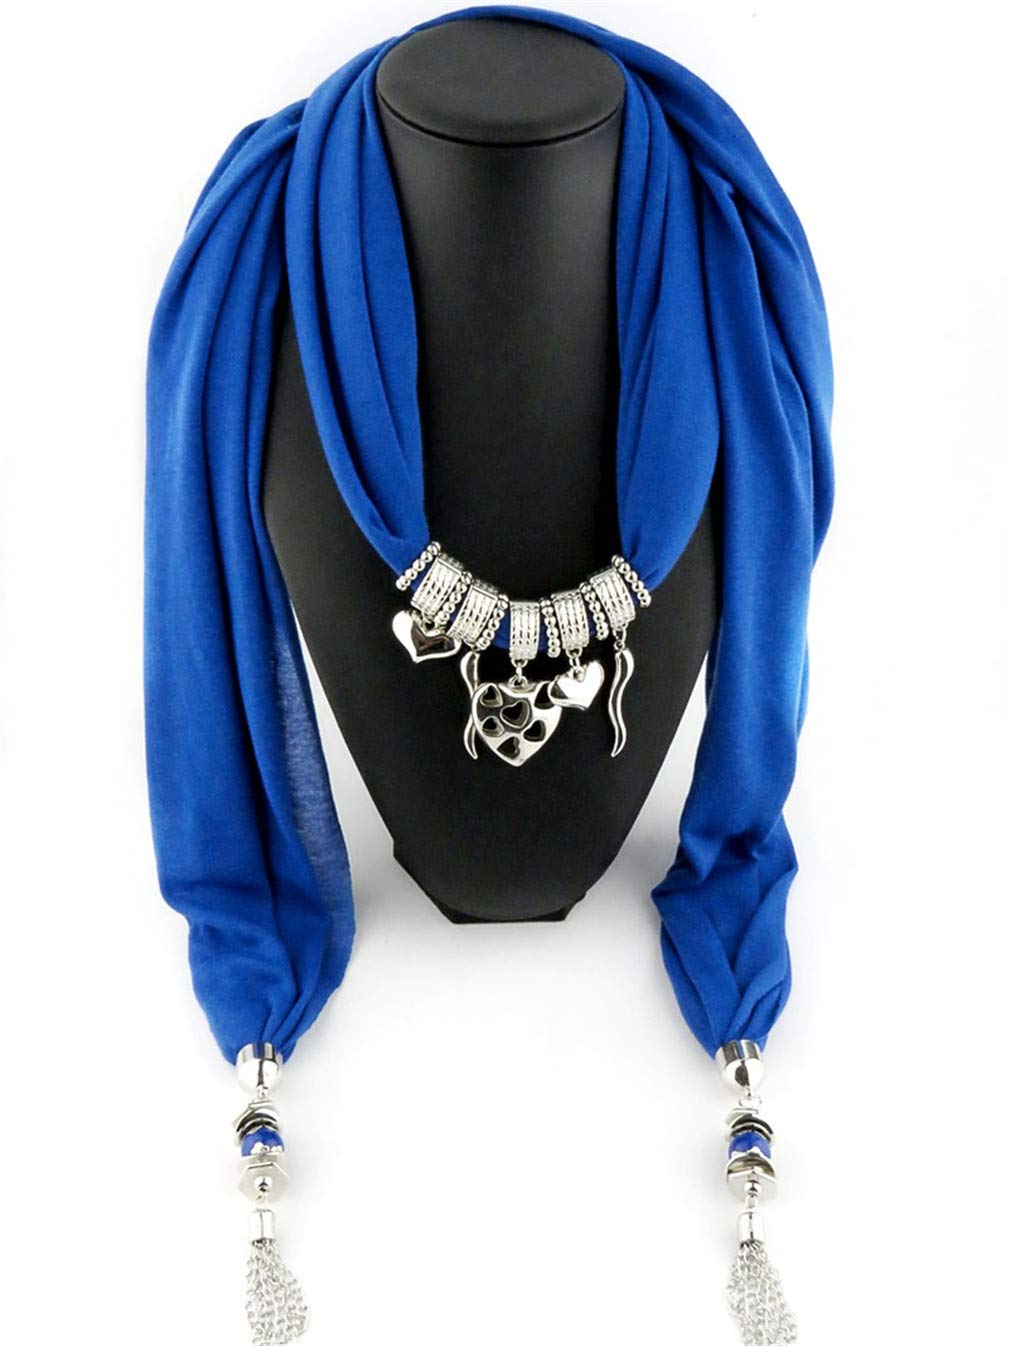 Chic-Dona Fashion Women/Lady's Jewelry Necklace Scarf Cotton Scarves Heart Pendant Scarves 2 One Size